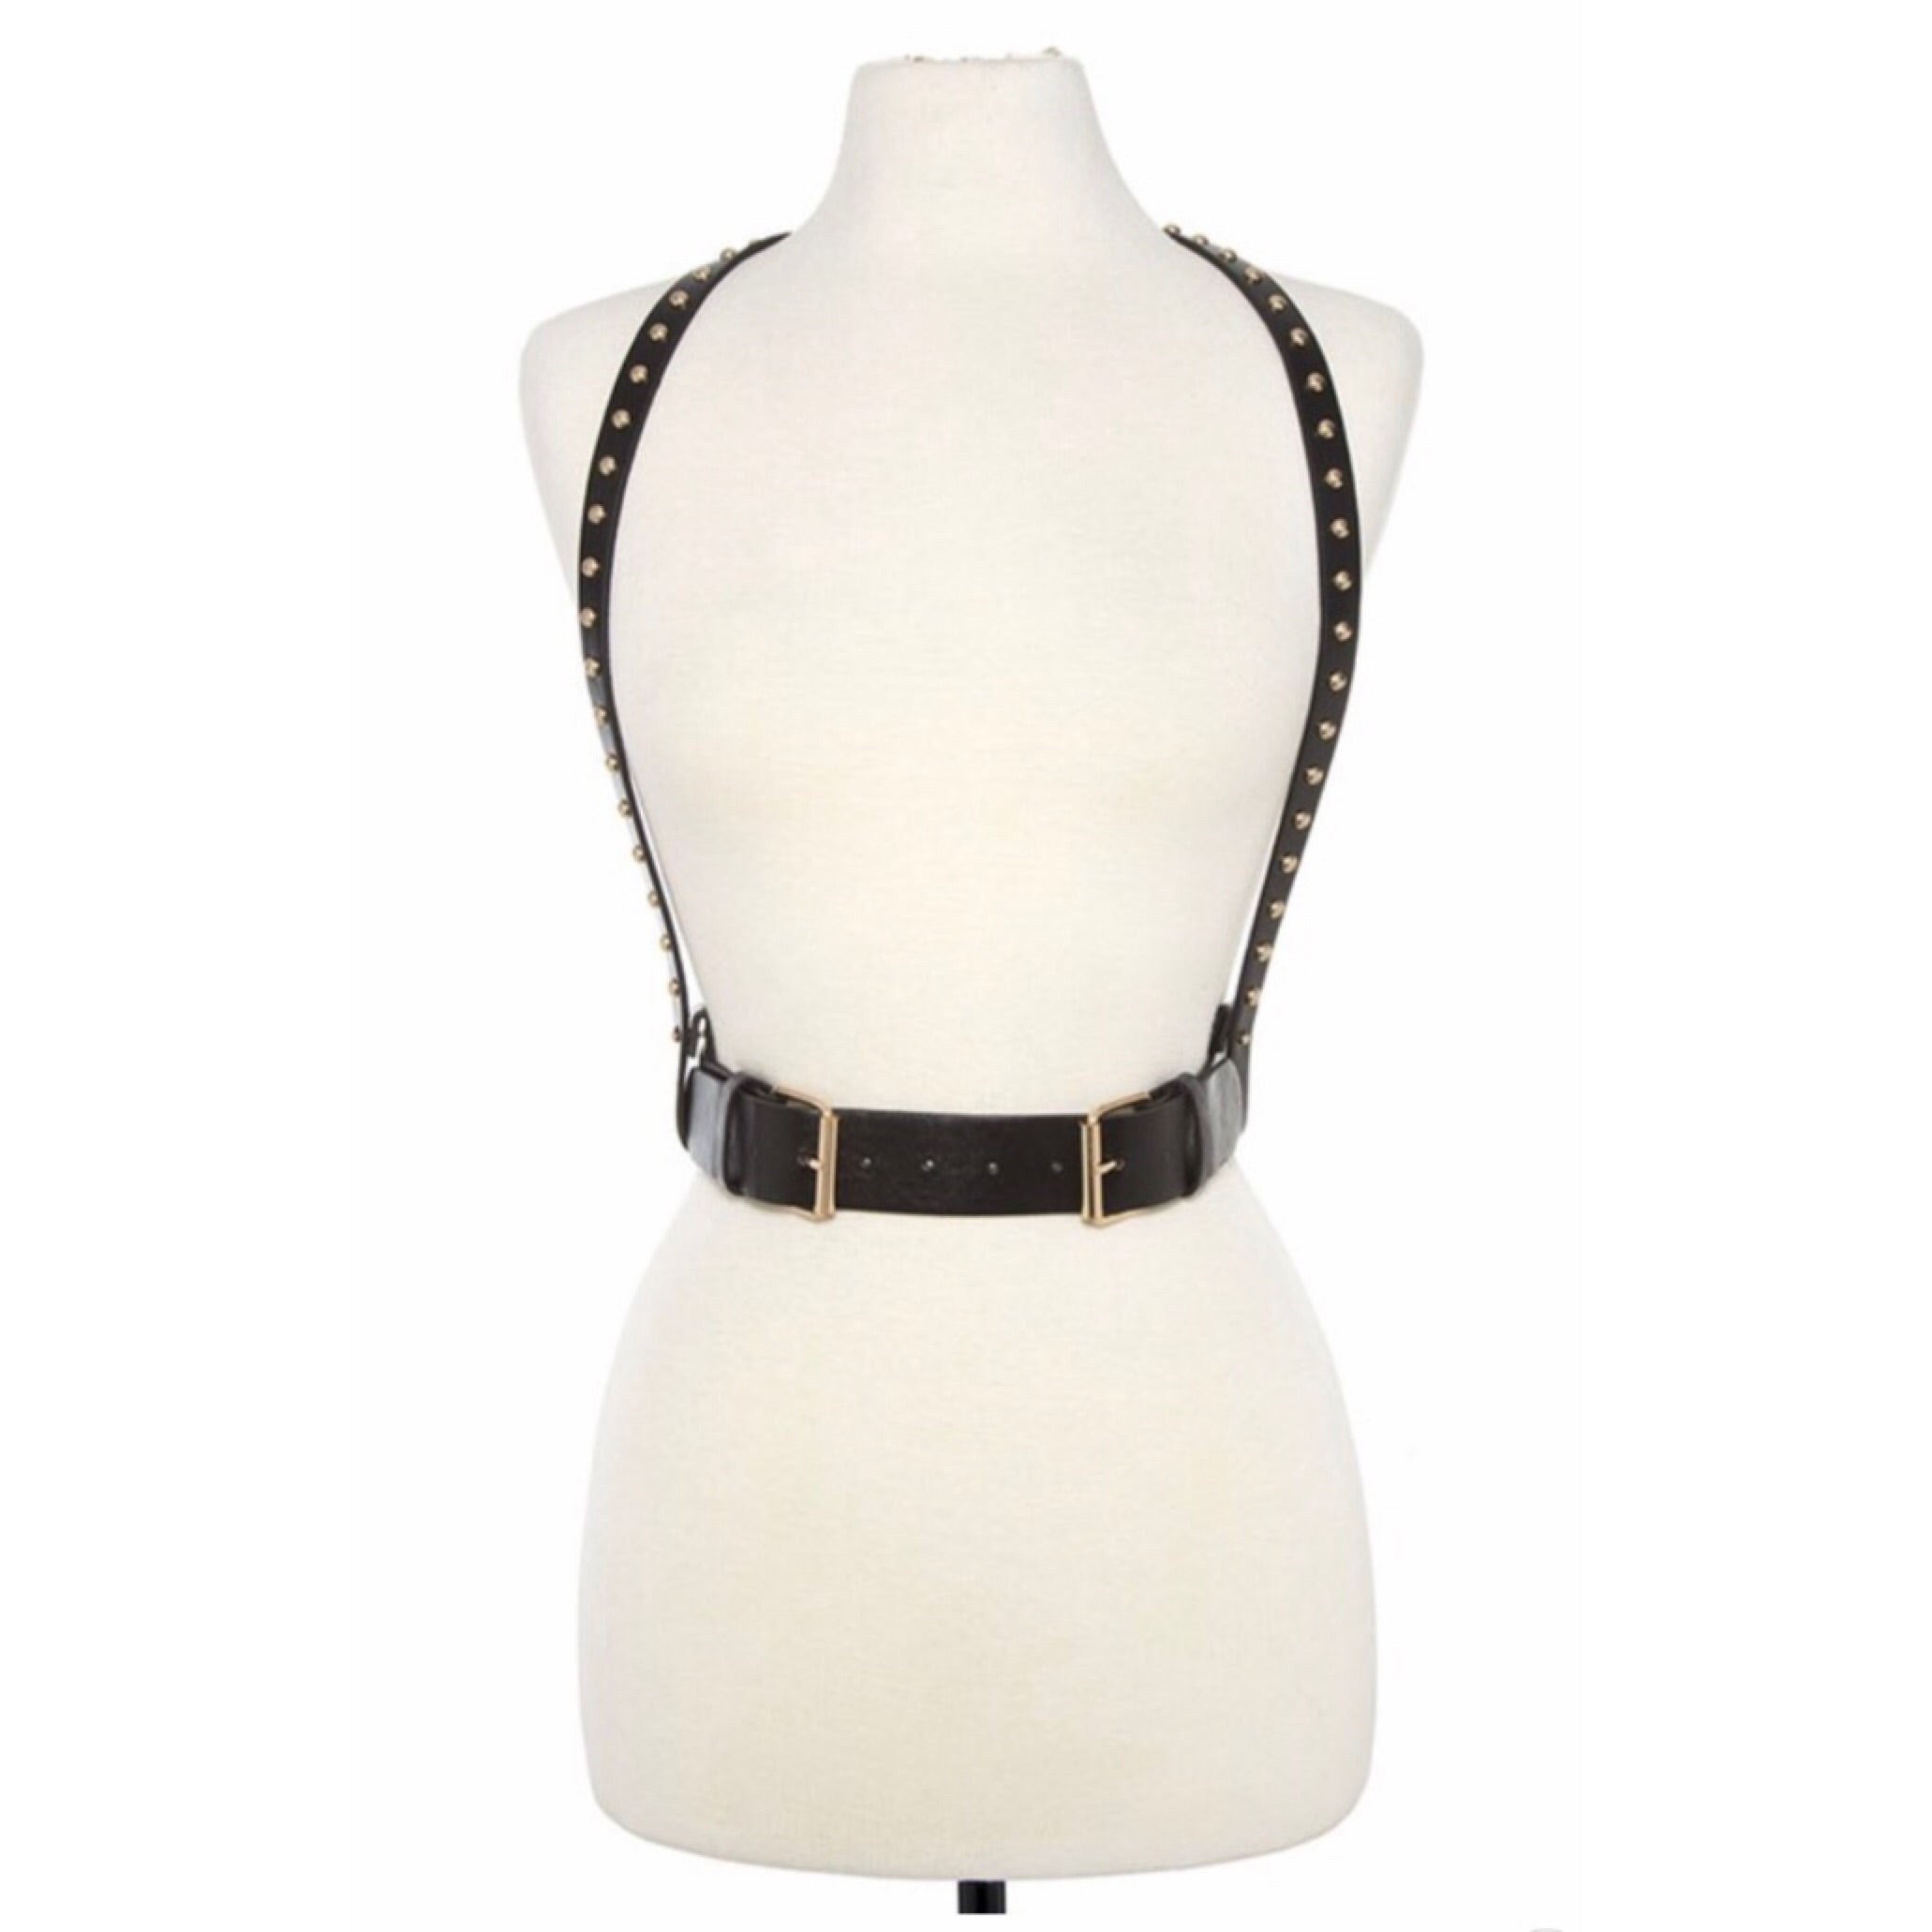 Kaylee Black Underbust Buckle Belt